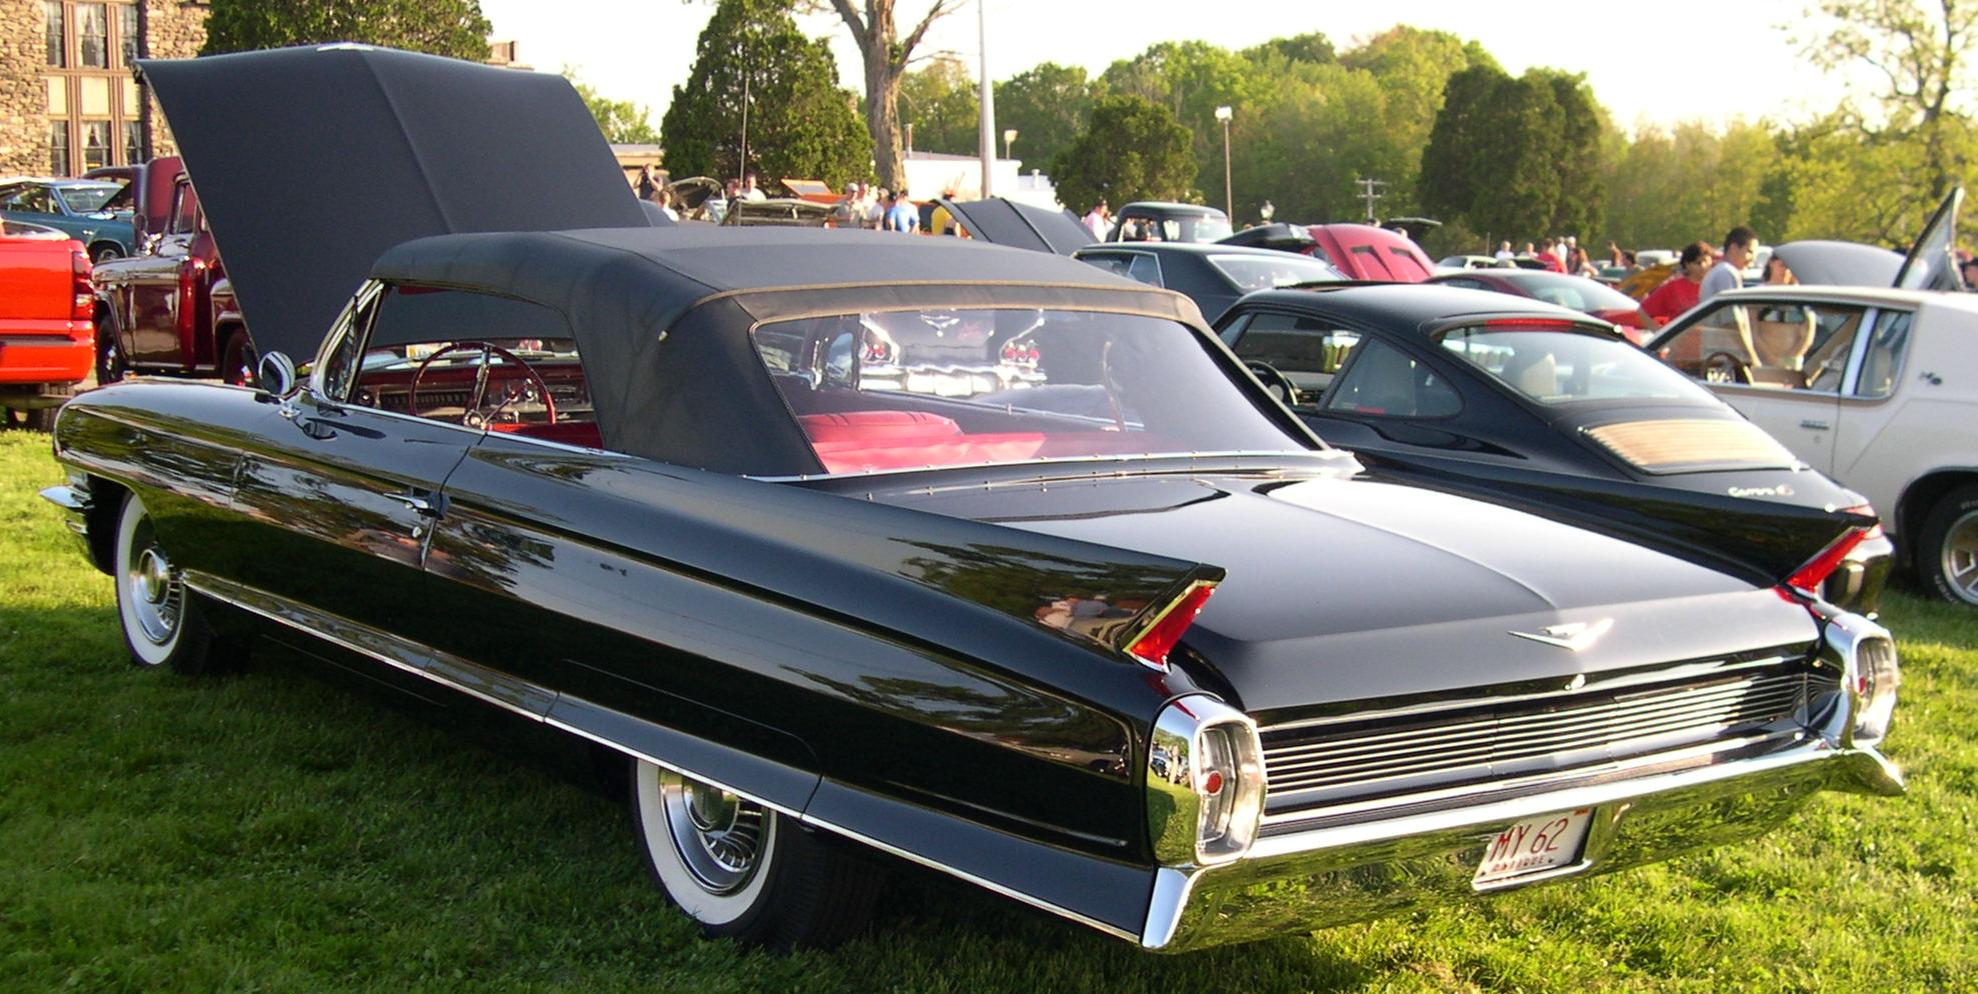 1962 Cadillac Series 62 Convertible Wallpaper For Background